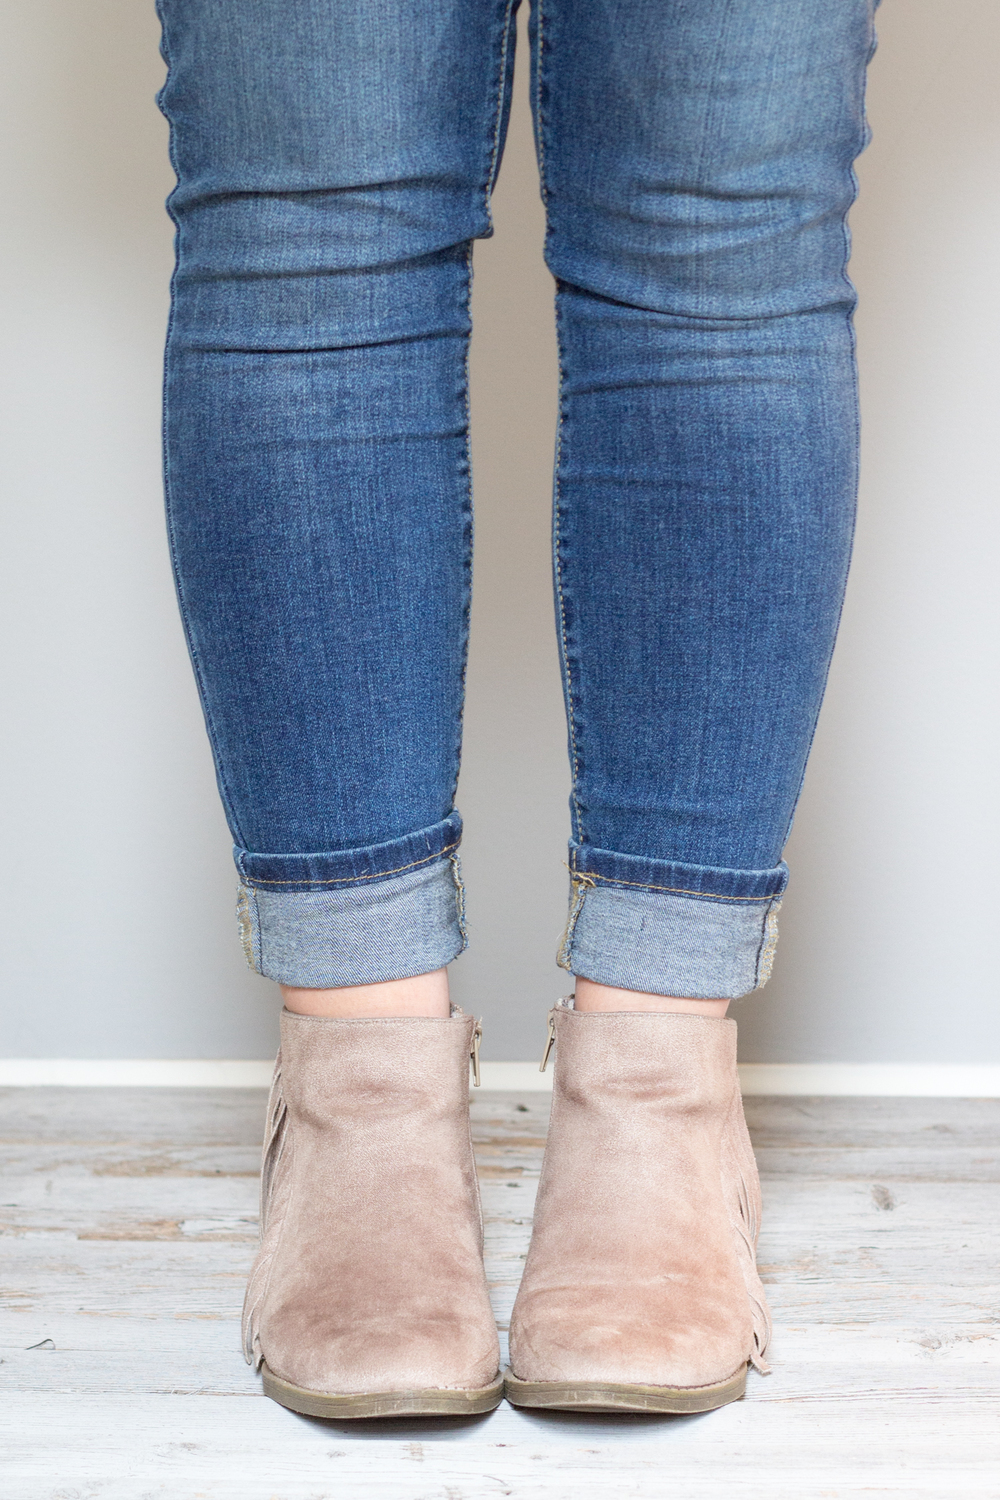 How to Roll Jeans with Boots